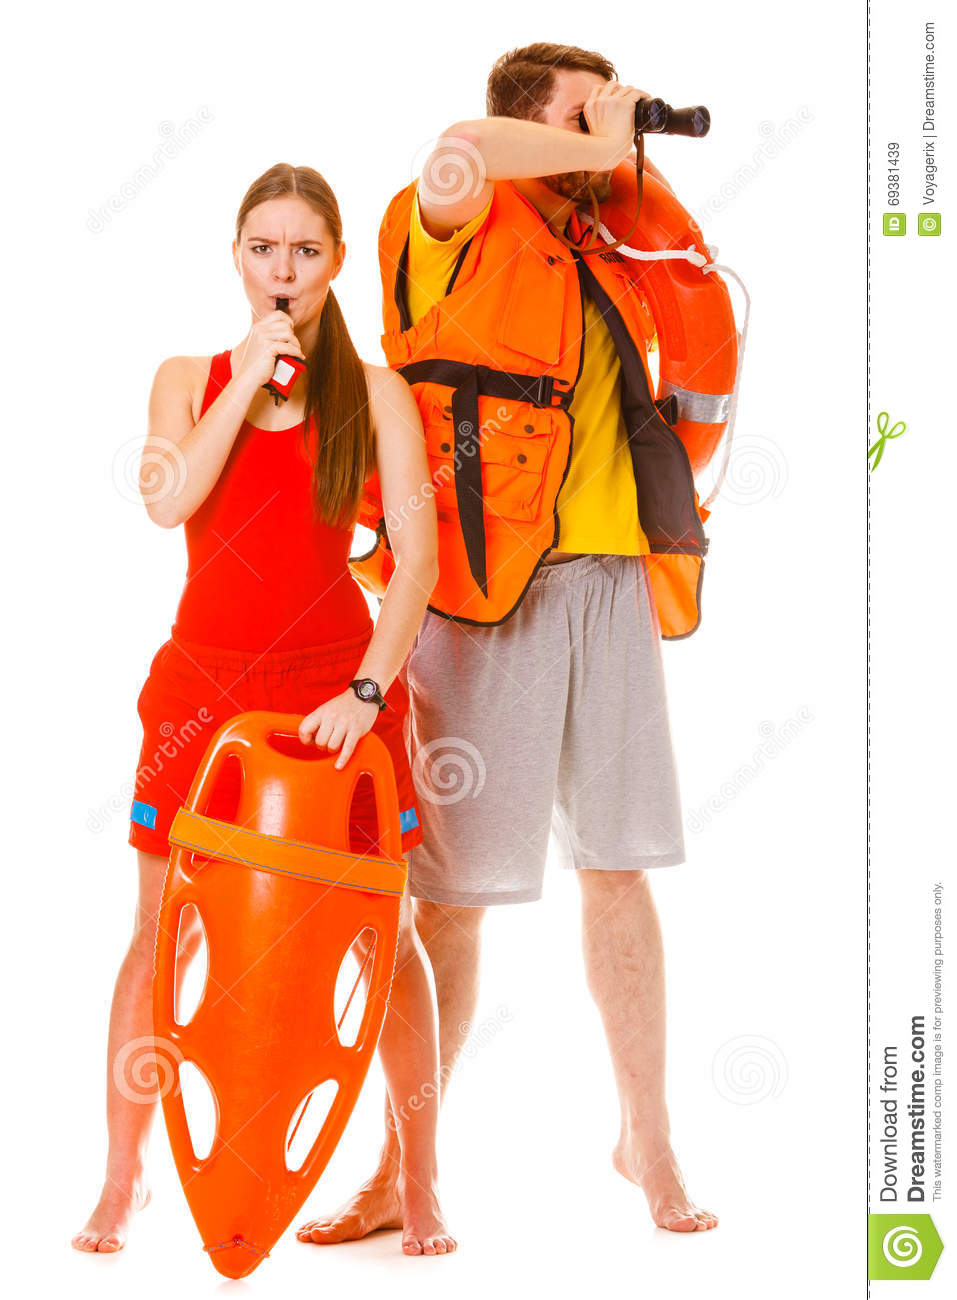 fad05203b7d9 Lifeguards In Life Vest With Ring Buoy Whistling. Stock Image ...